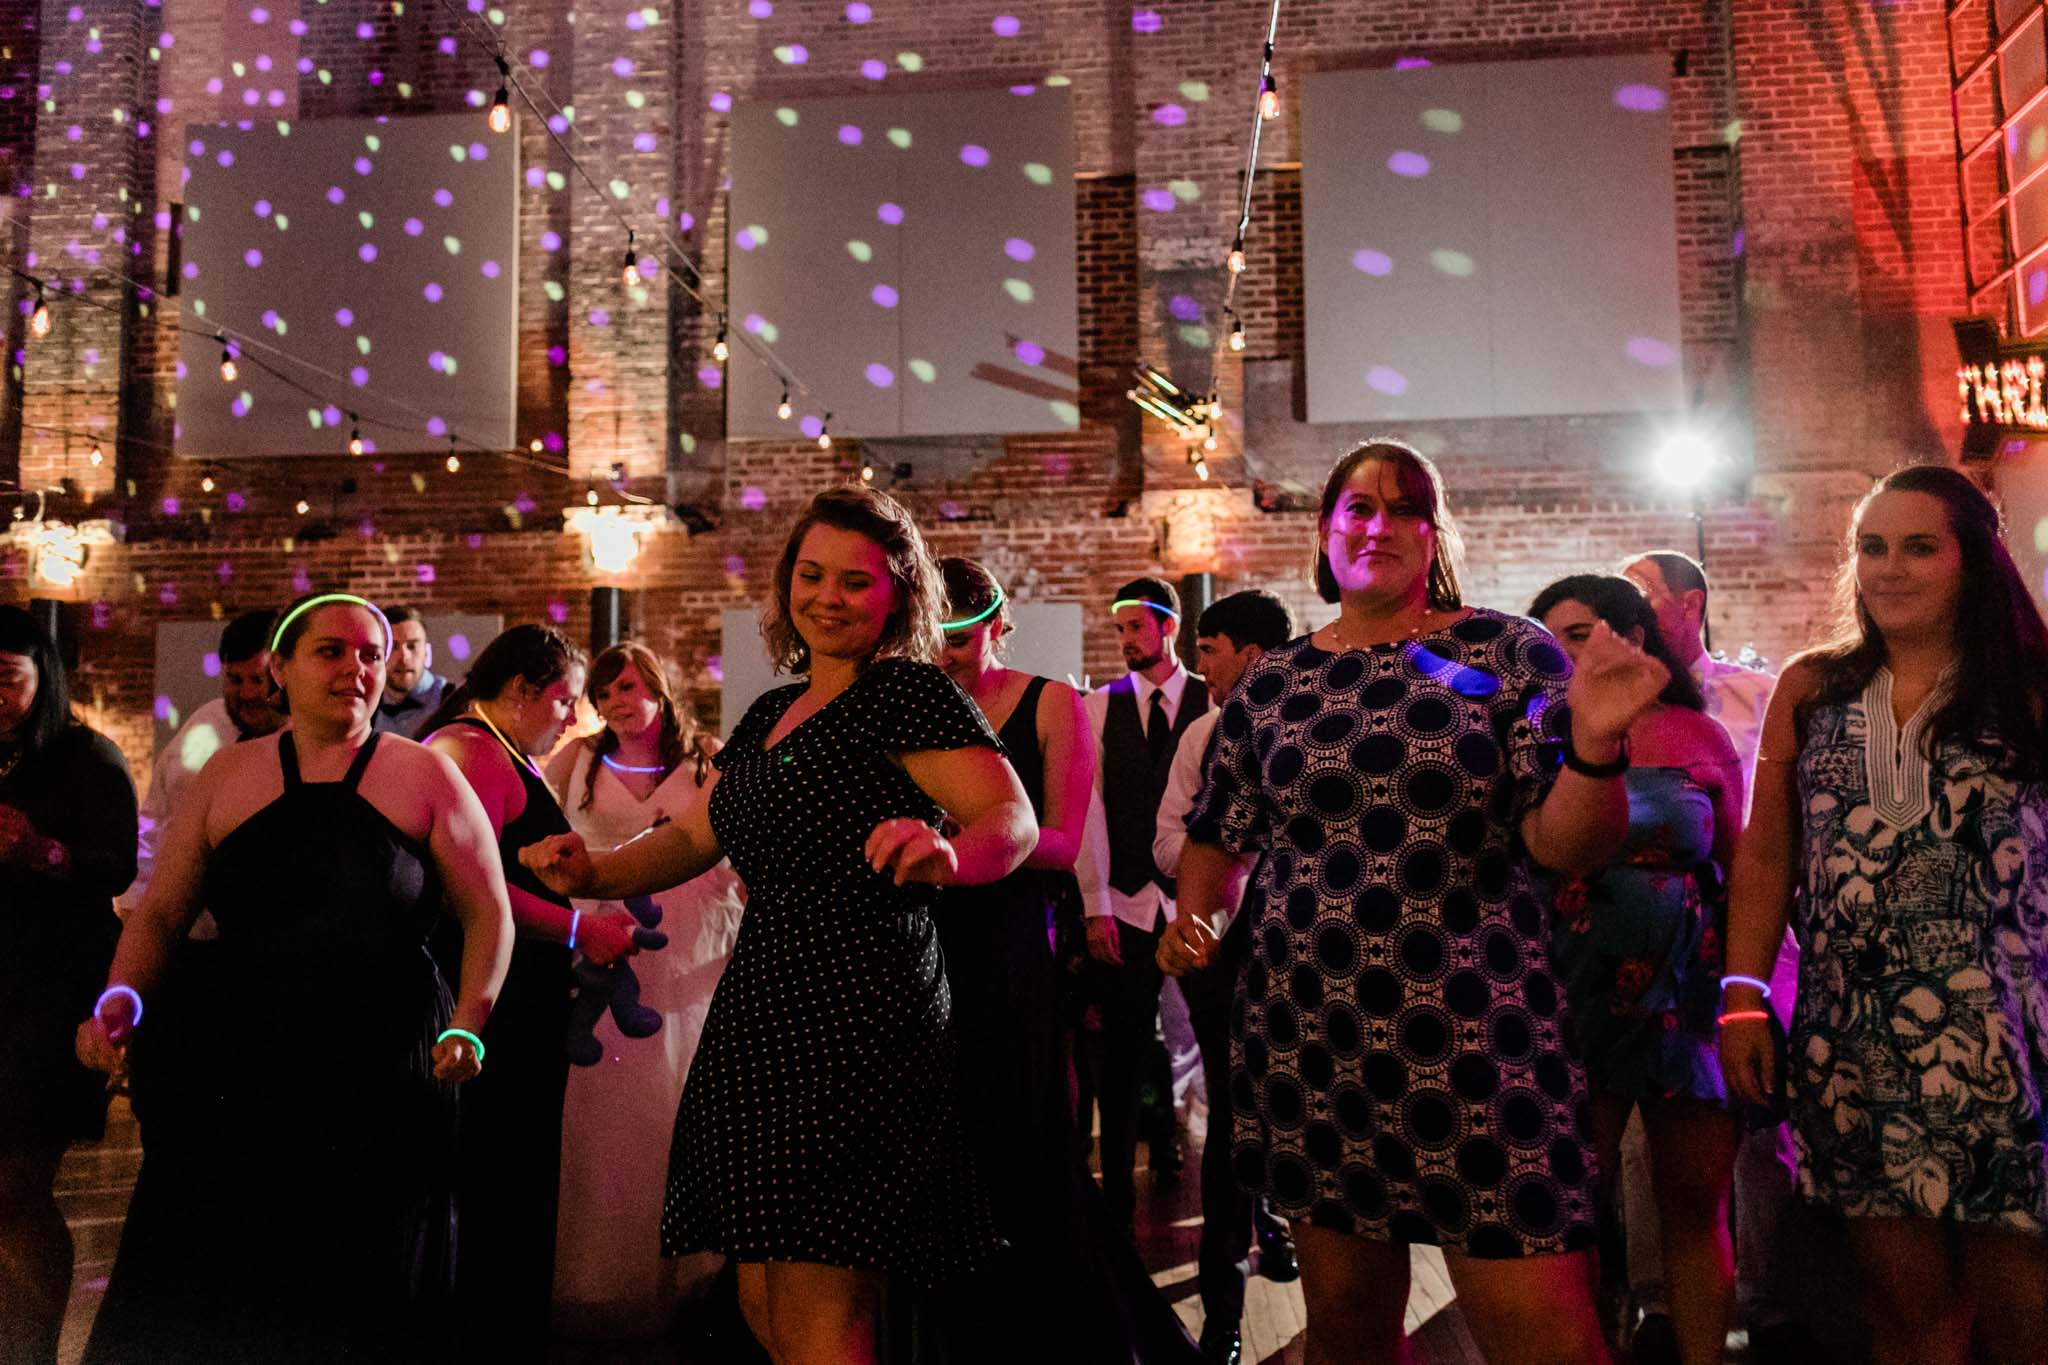 Haw River Ballroom Wedding | Durham Wedding Photographer | By G. Lin Photography | Women dancing at wedding reception